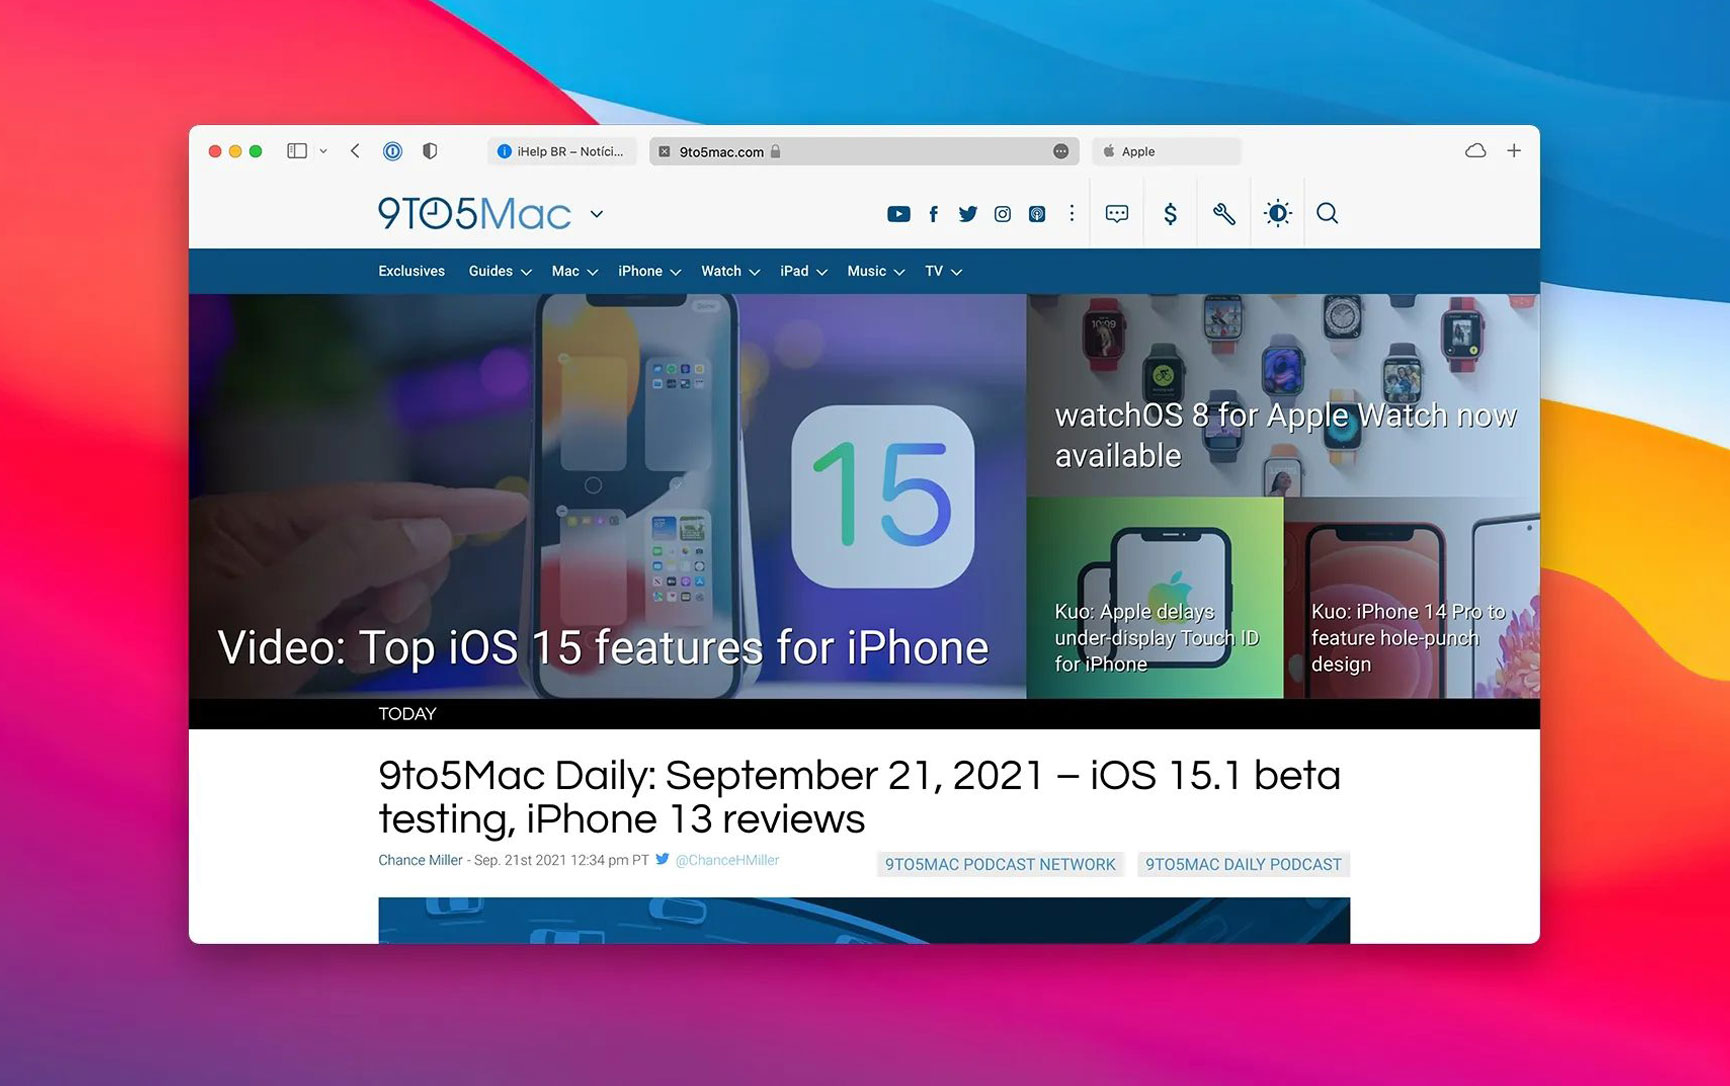 Safari 15 with new tab design now available for macOS Big Sur and Catalina users